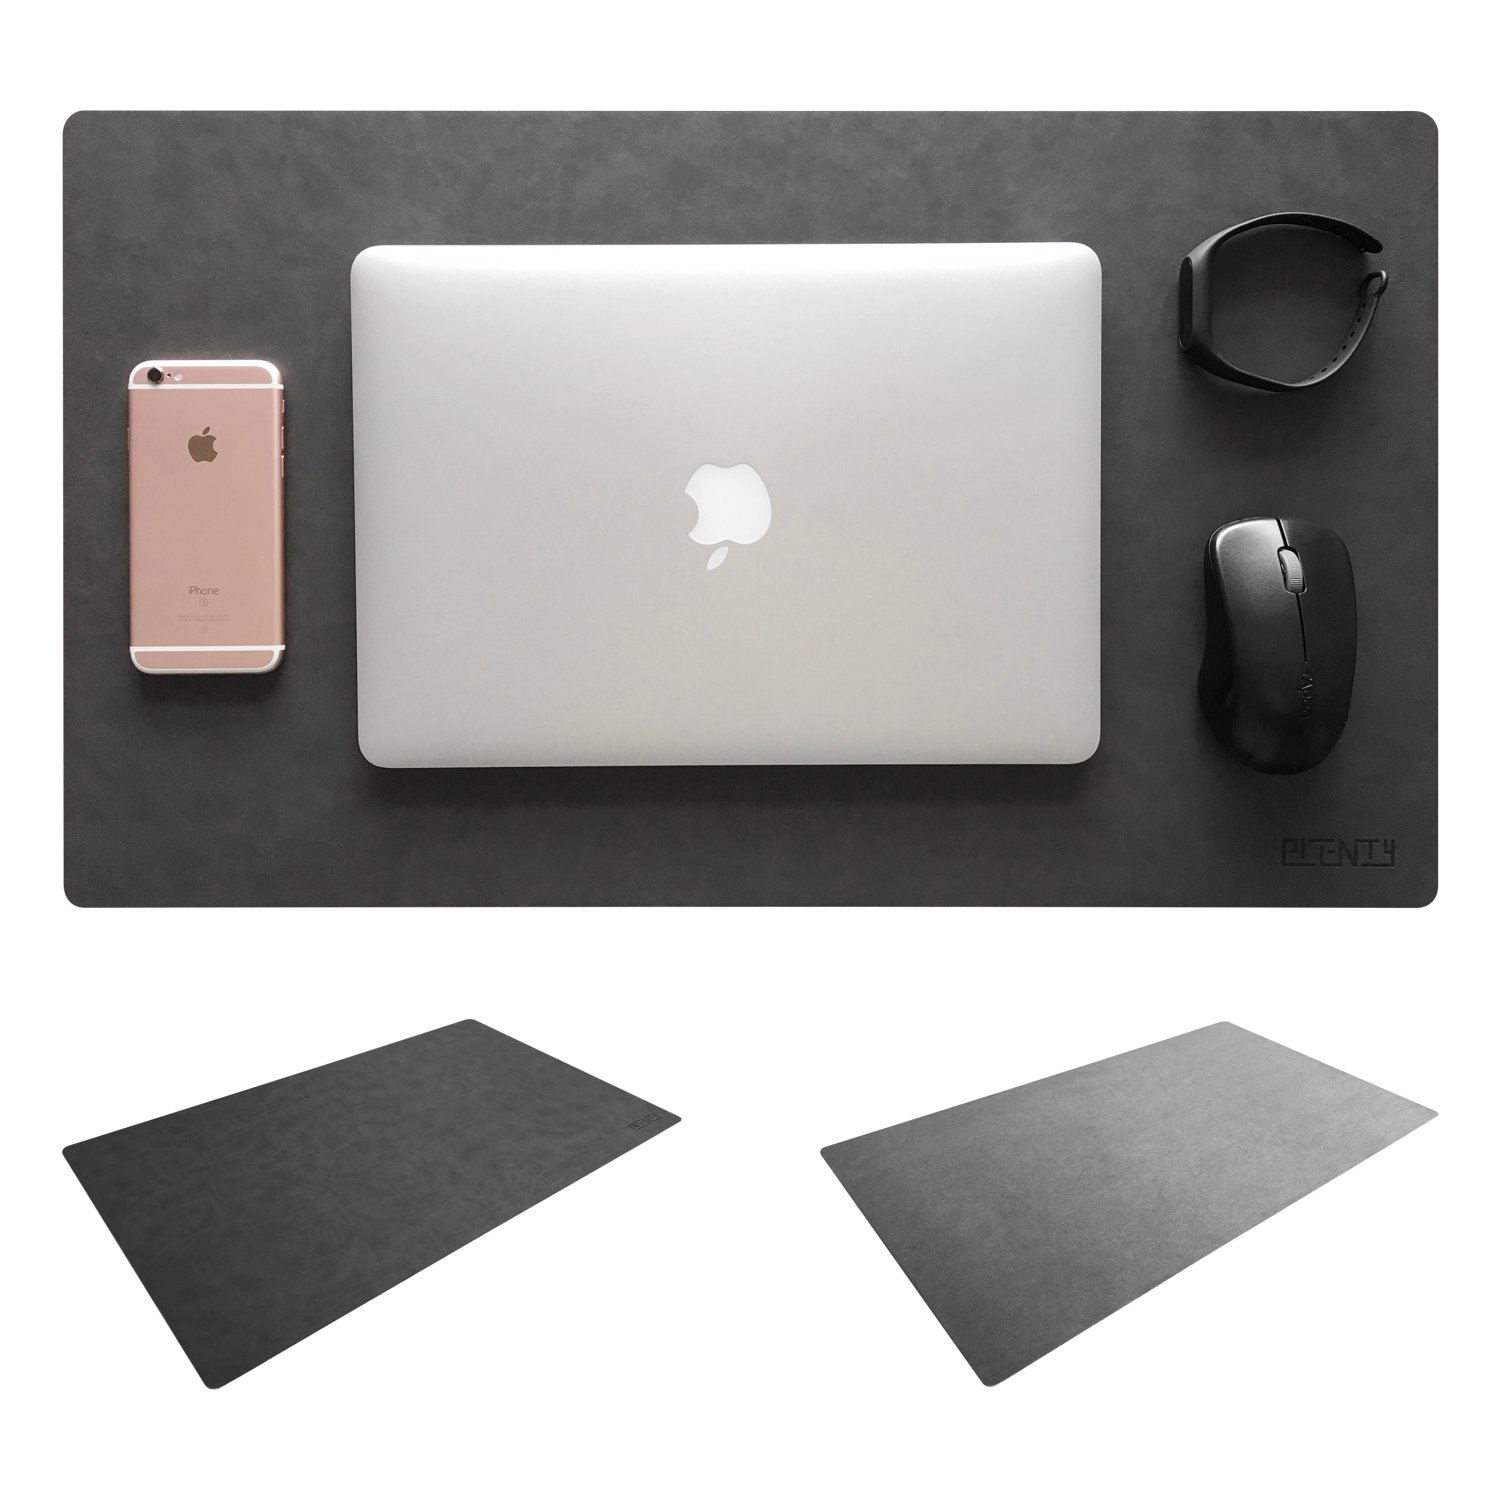 Leather Desk Mat & Mate 24 x 14 Non-Slip Smooth Writing Desk Pad Protective Mat Protector Mouse Pad for Desktops and Laptops (Dark Grey) Haitu FBA_pl-005